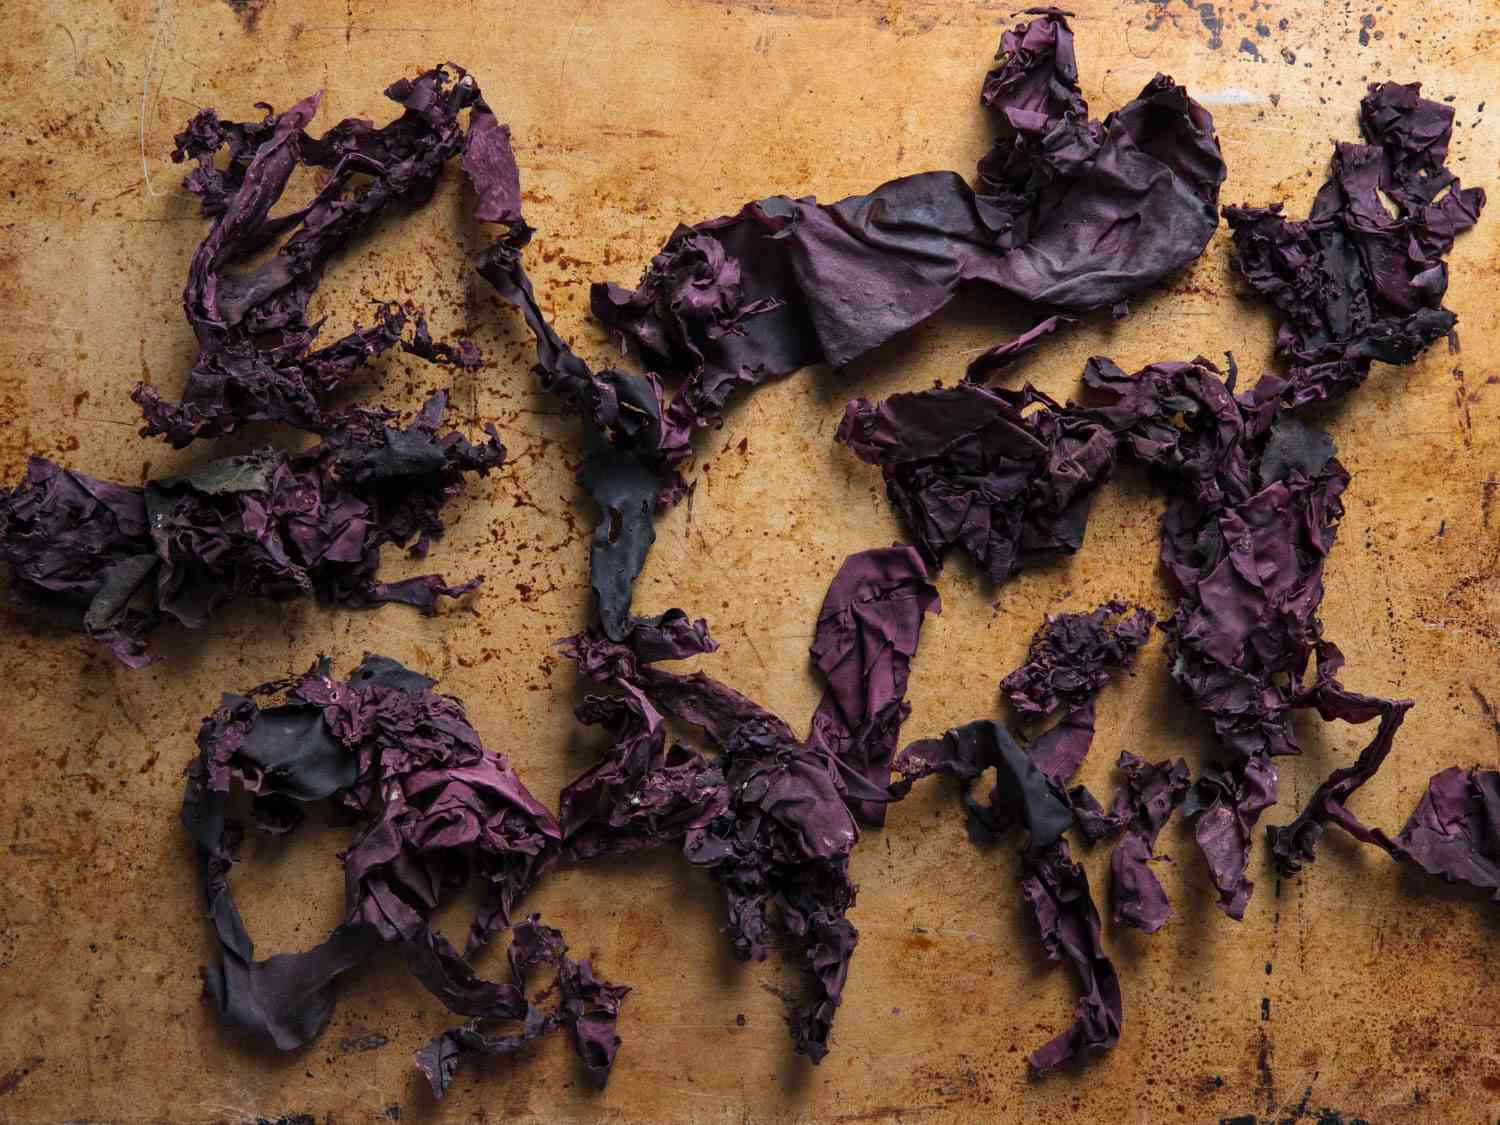 Several pieces of purple whole-leaf dulse